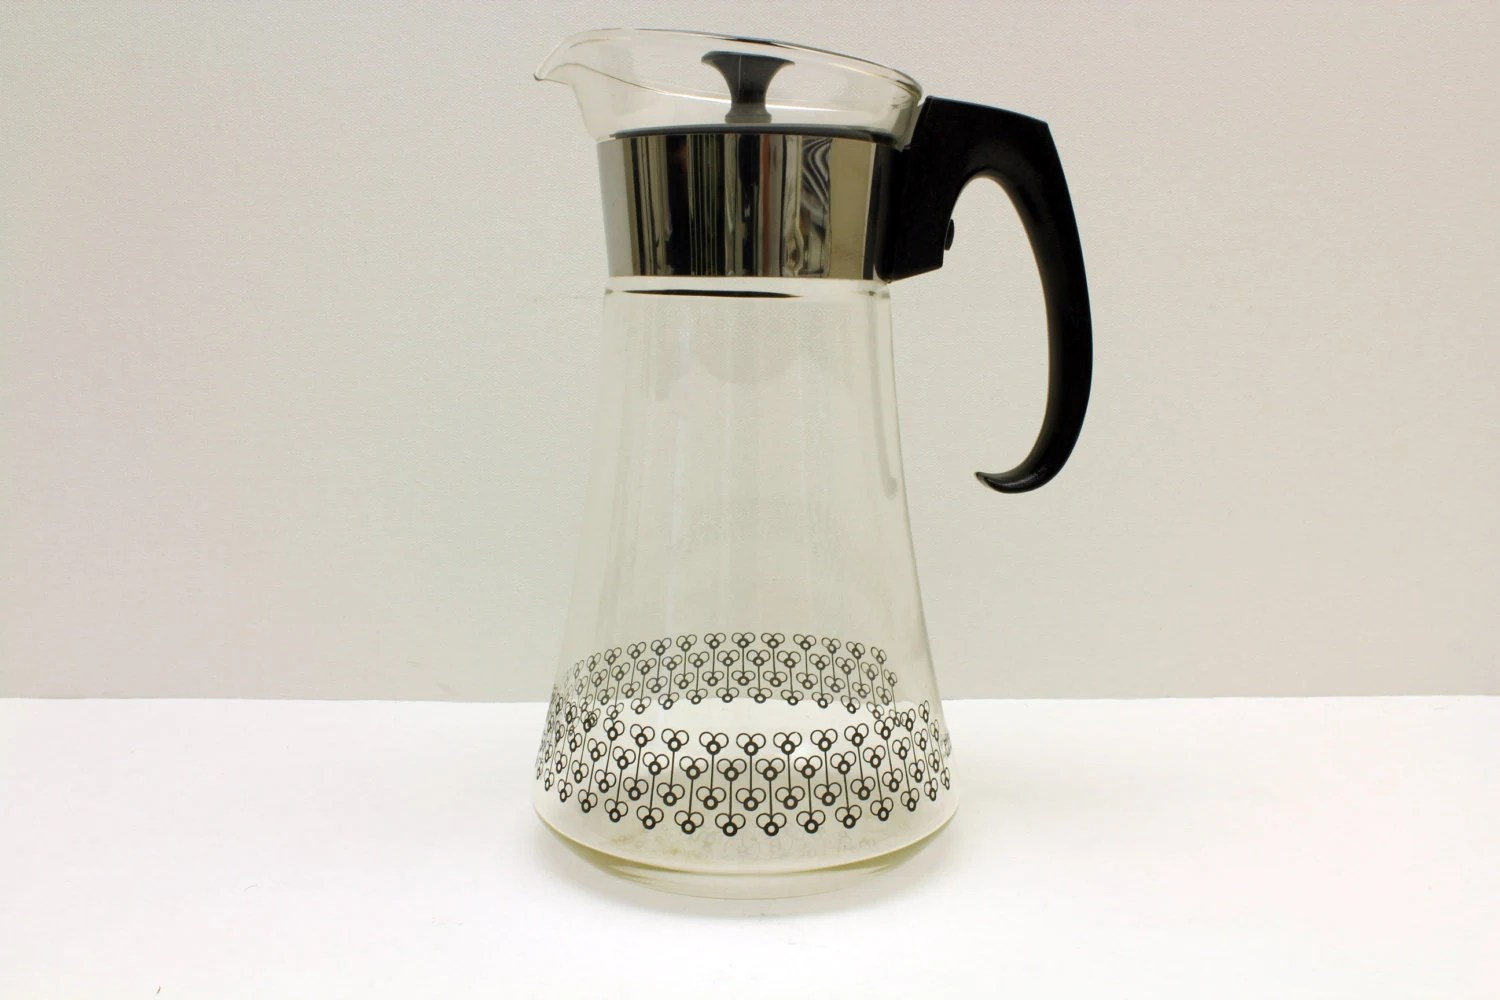 Heat Proof Pitcher Large Vintage Pyrex Coffee Carafe Glass Coffee Pitcher Heat